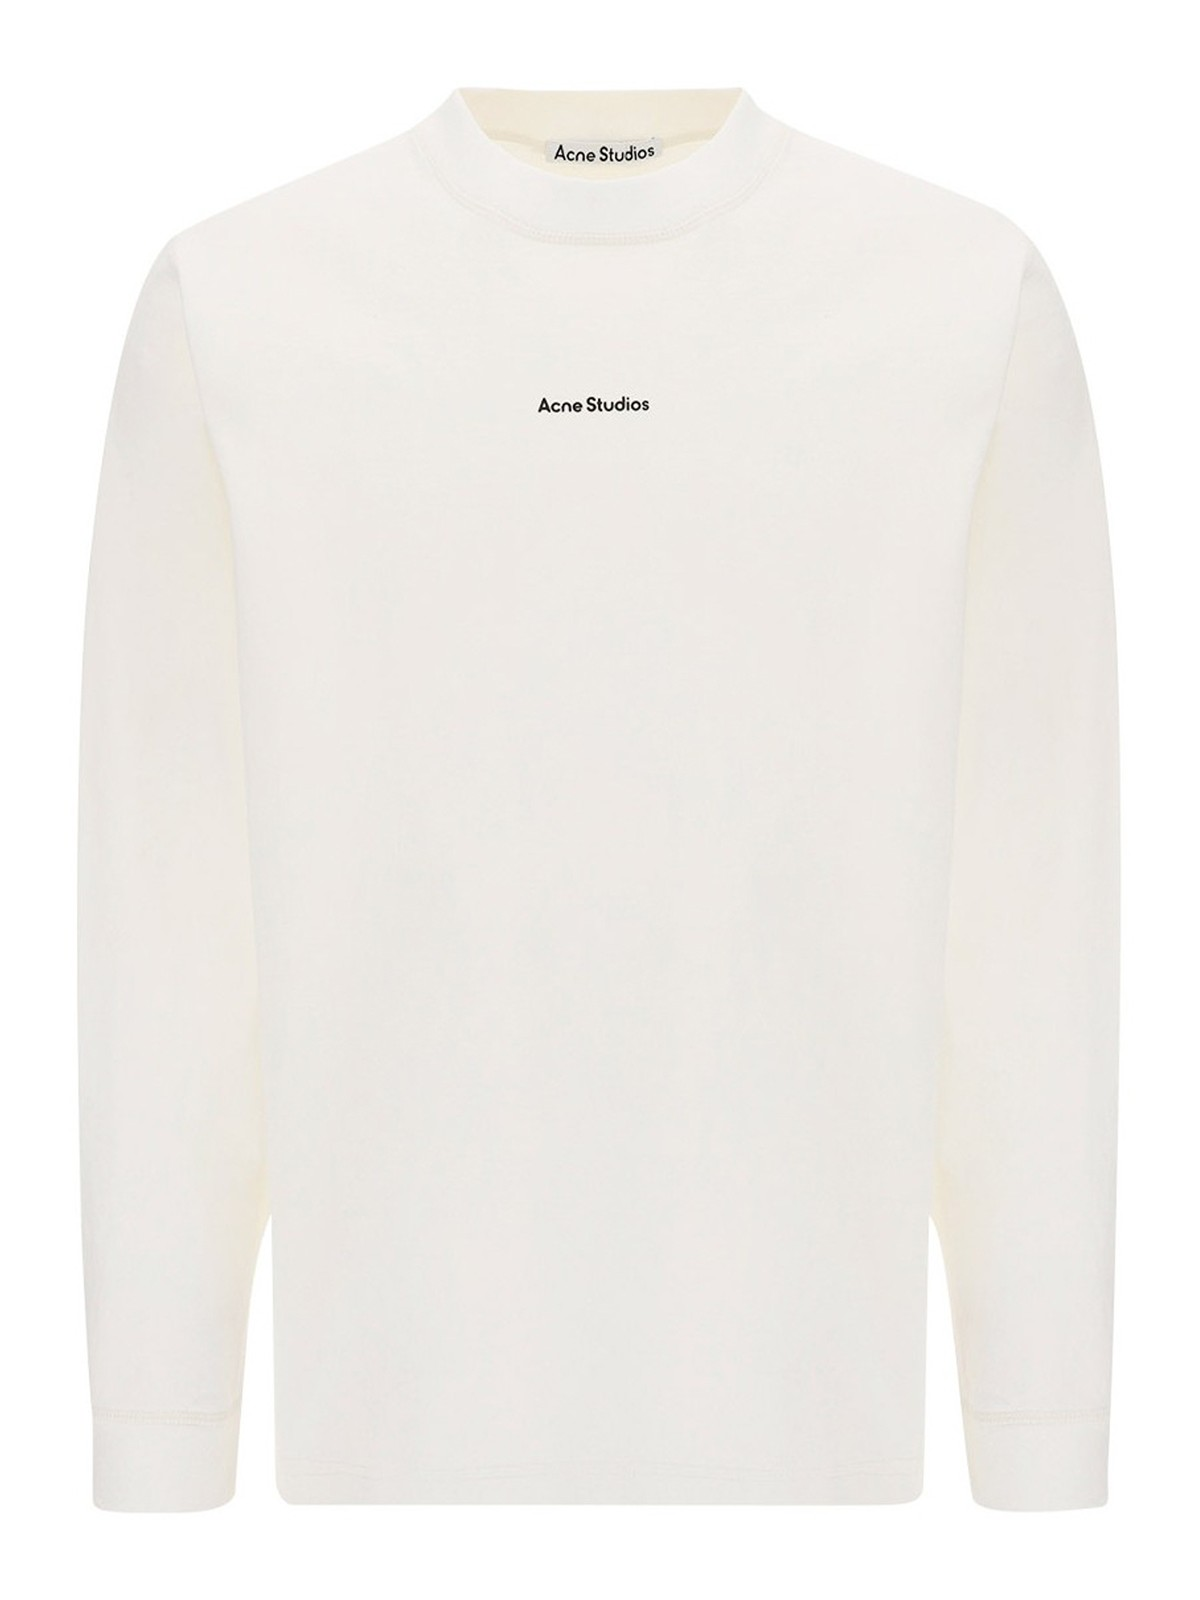 Acne Studios LOGO LONG SLEEVED T-SHIRT